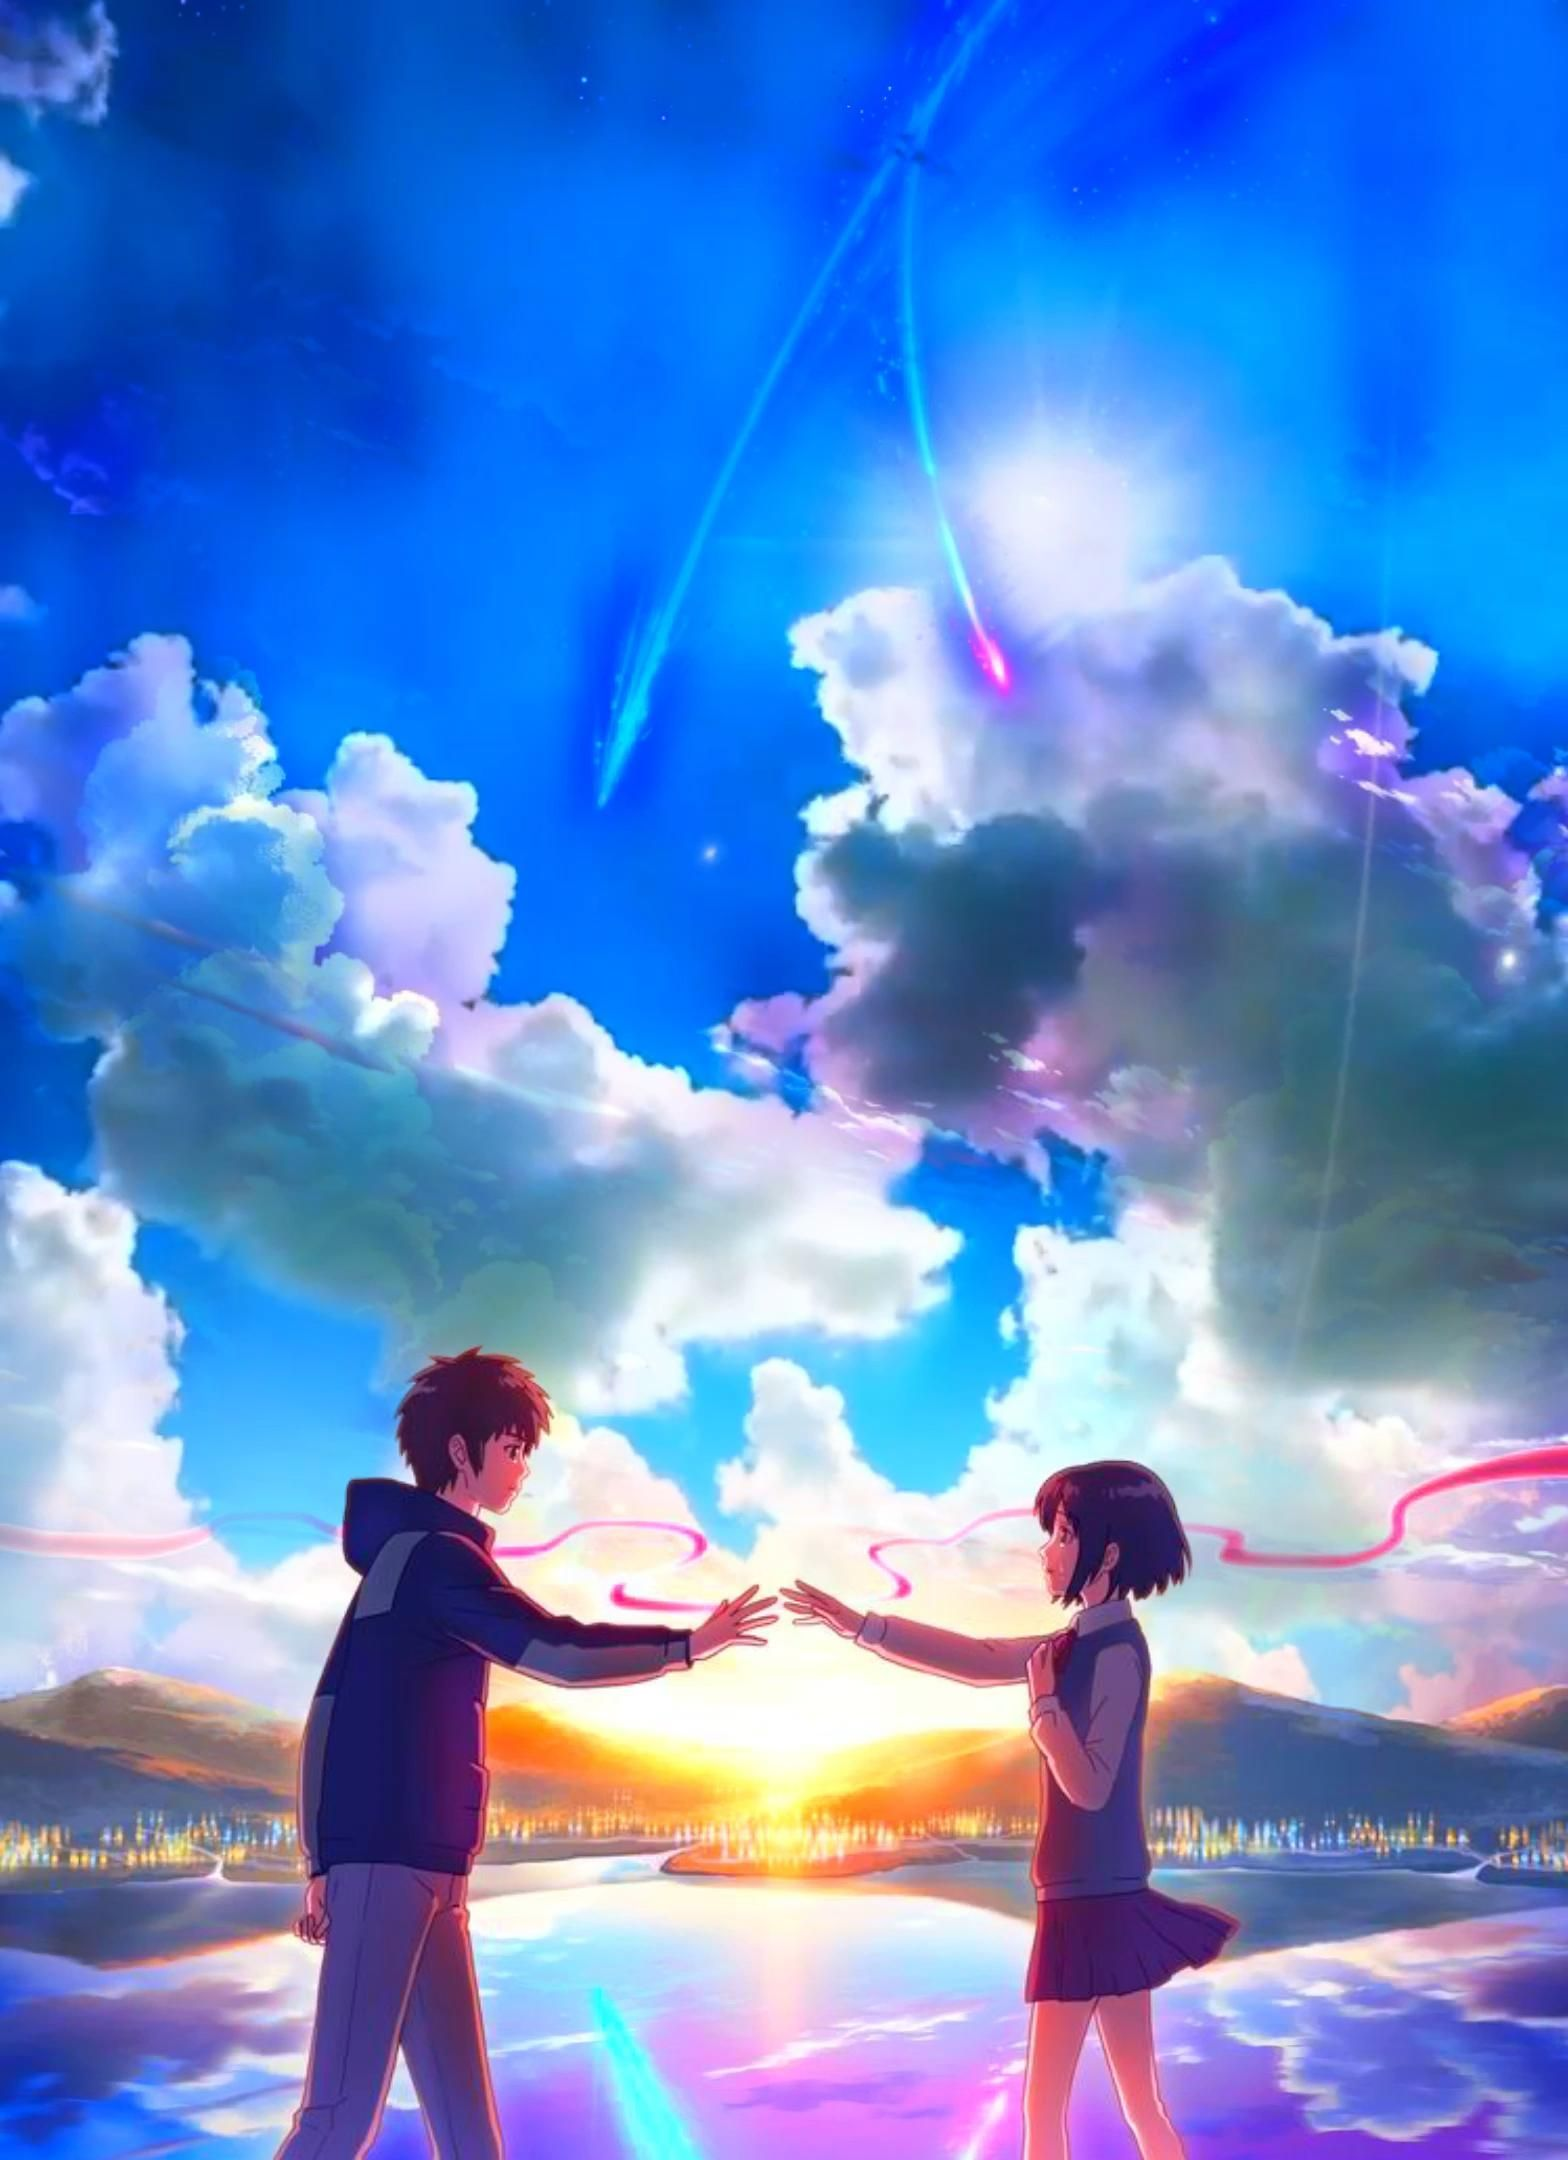 Your Name 4k Live Wallpaper In 2020 Cool Anime Wallpapers Anime Kiss Anime Wallpaper Live